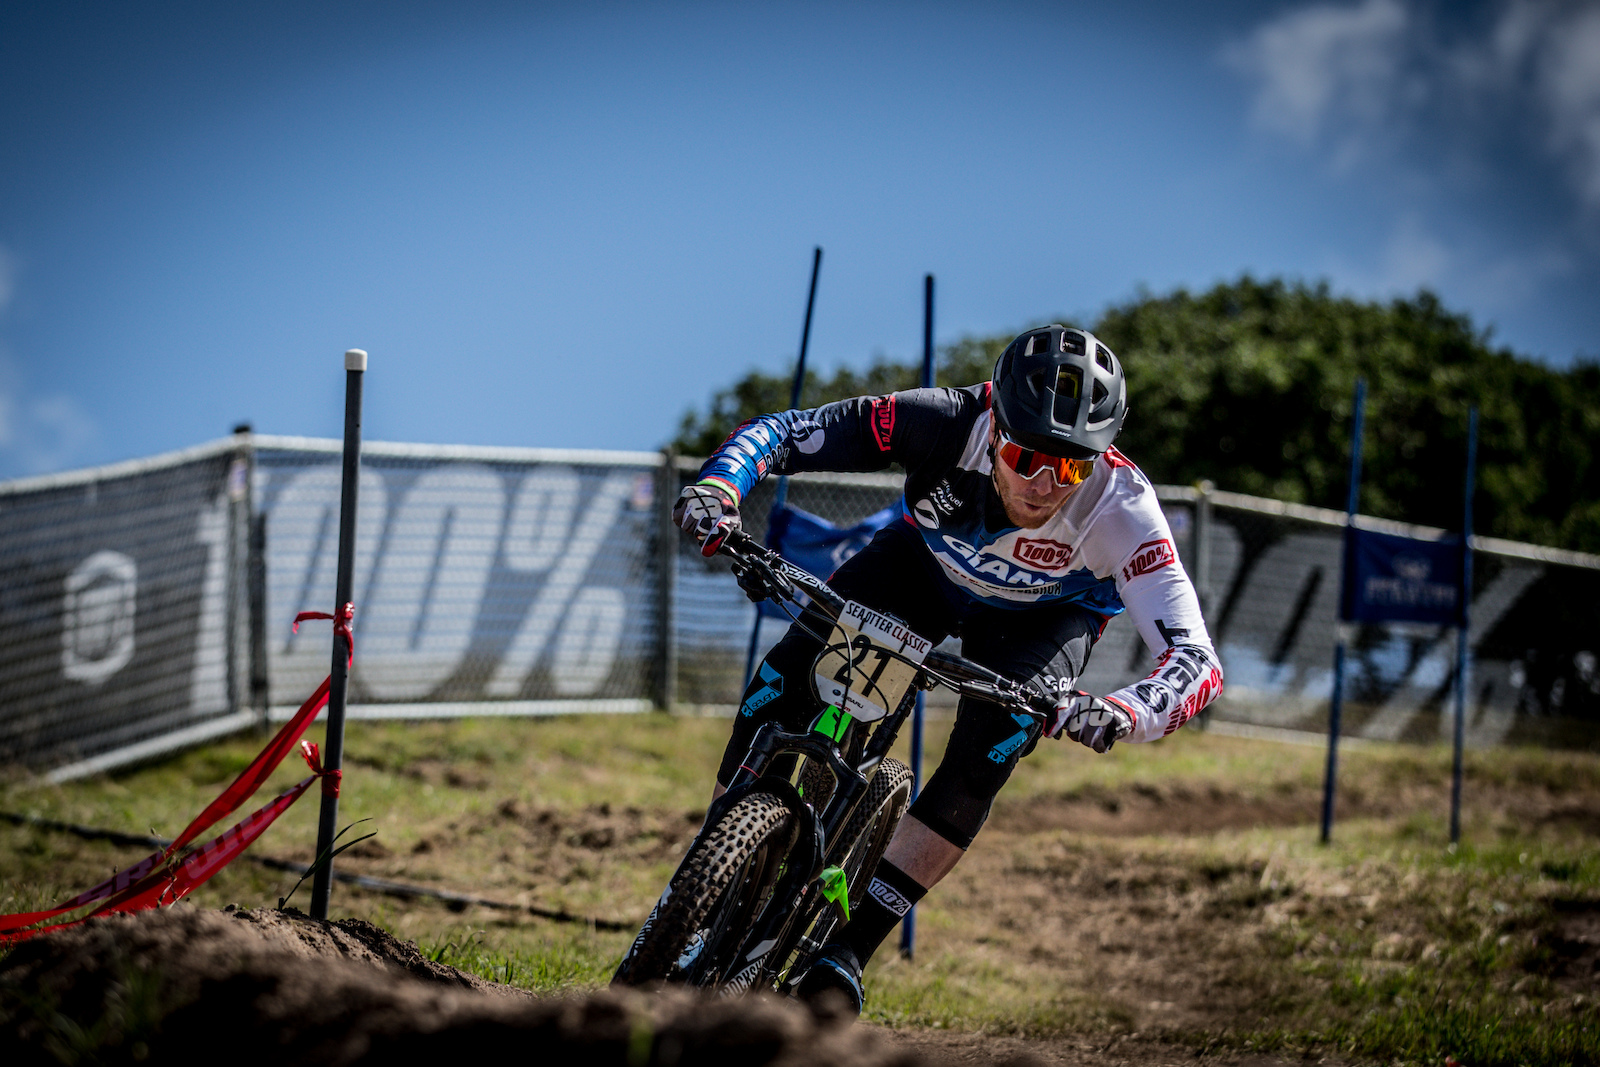 Josh Carlson EWS Factory Giant Racer drops in to a top 10 finish on the day.